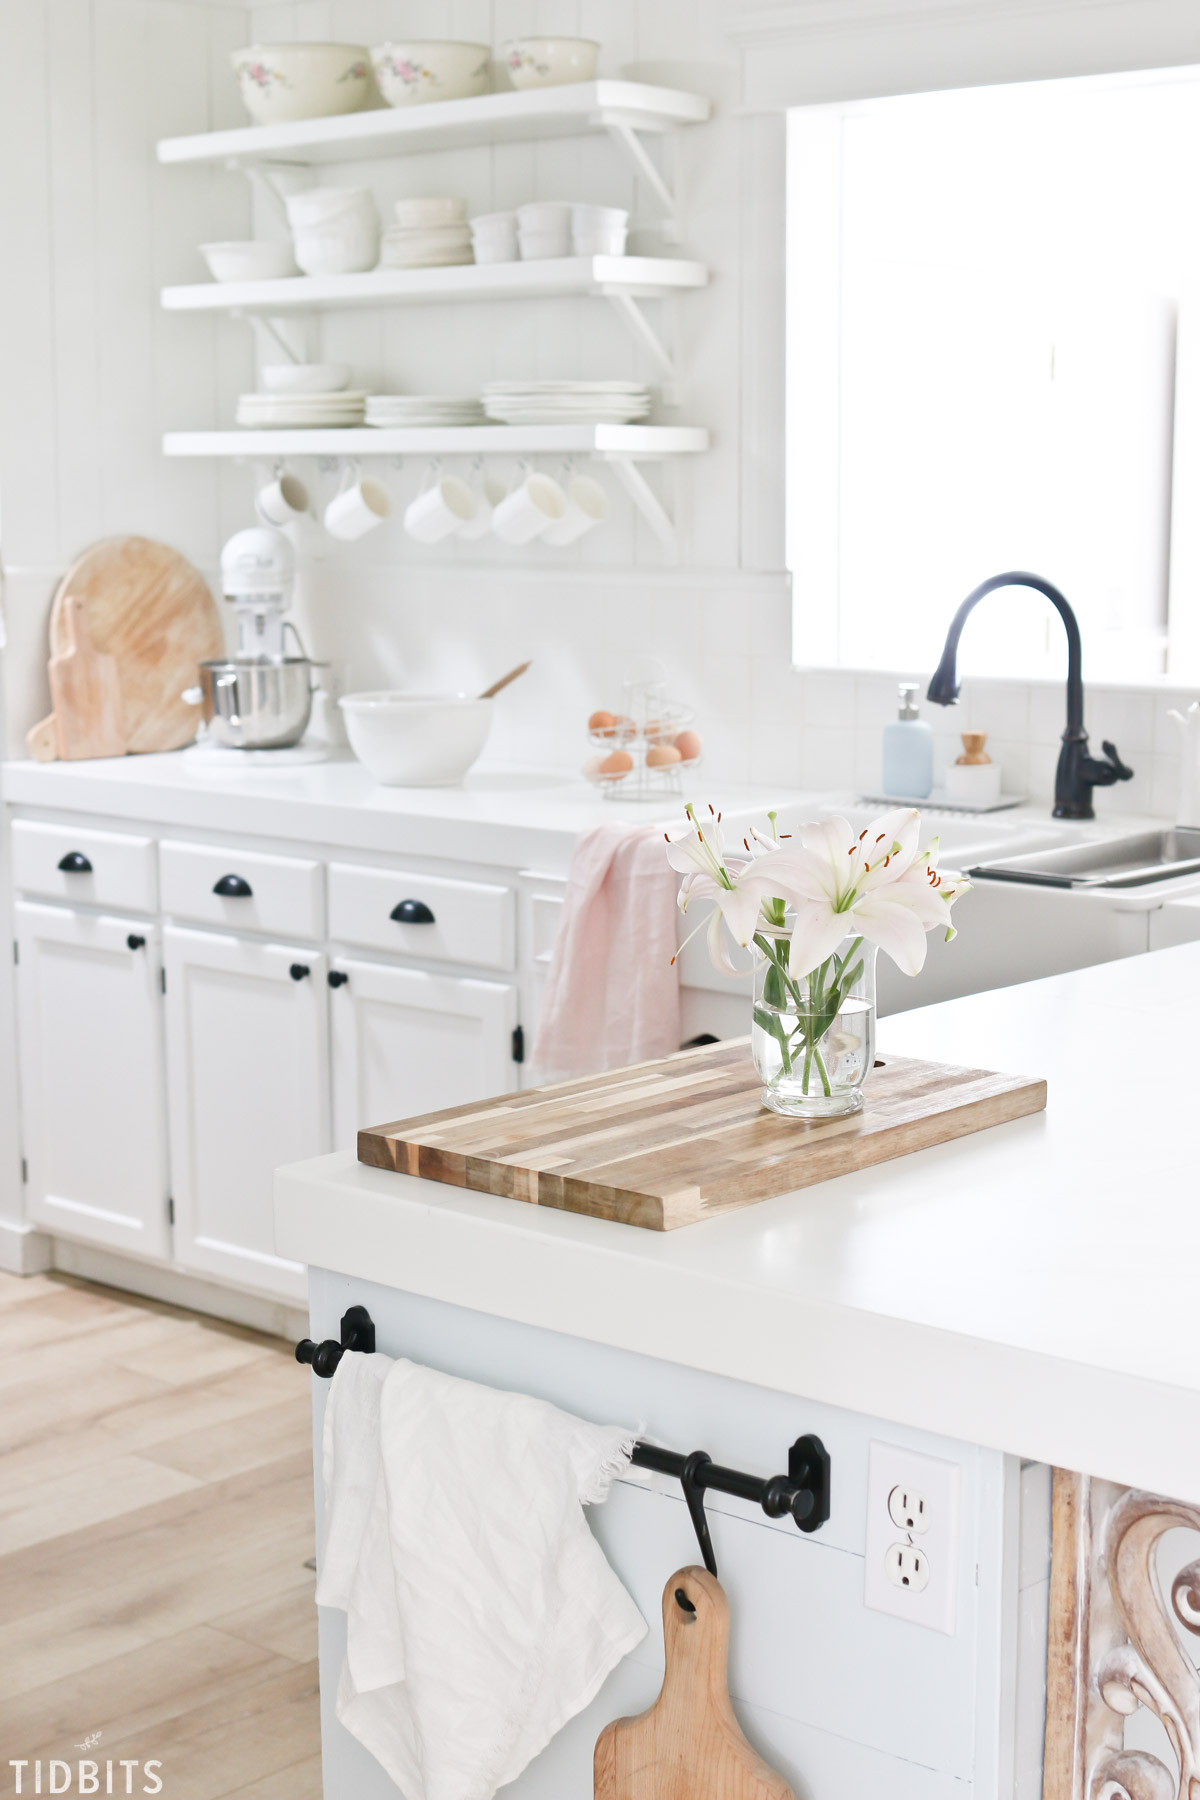 A cottage farmhouse kitchen Spring refresh by TIDBITS